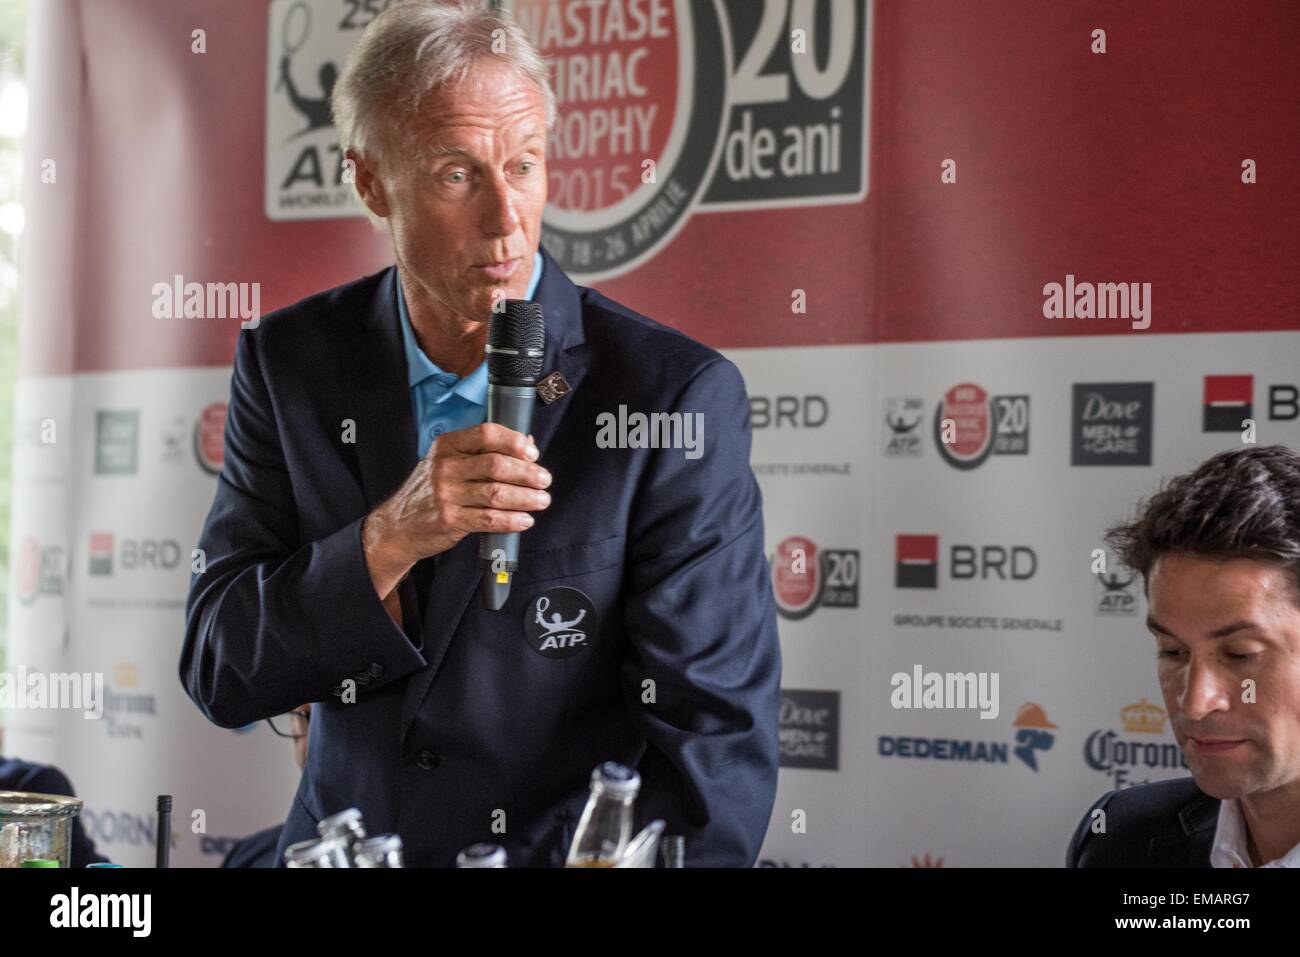 April 18, 2015: Gerald Armstrong - ATP Supervisor L and Konstantin Haerle - ATP Tour Manager at the press conference - Stock Image